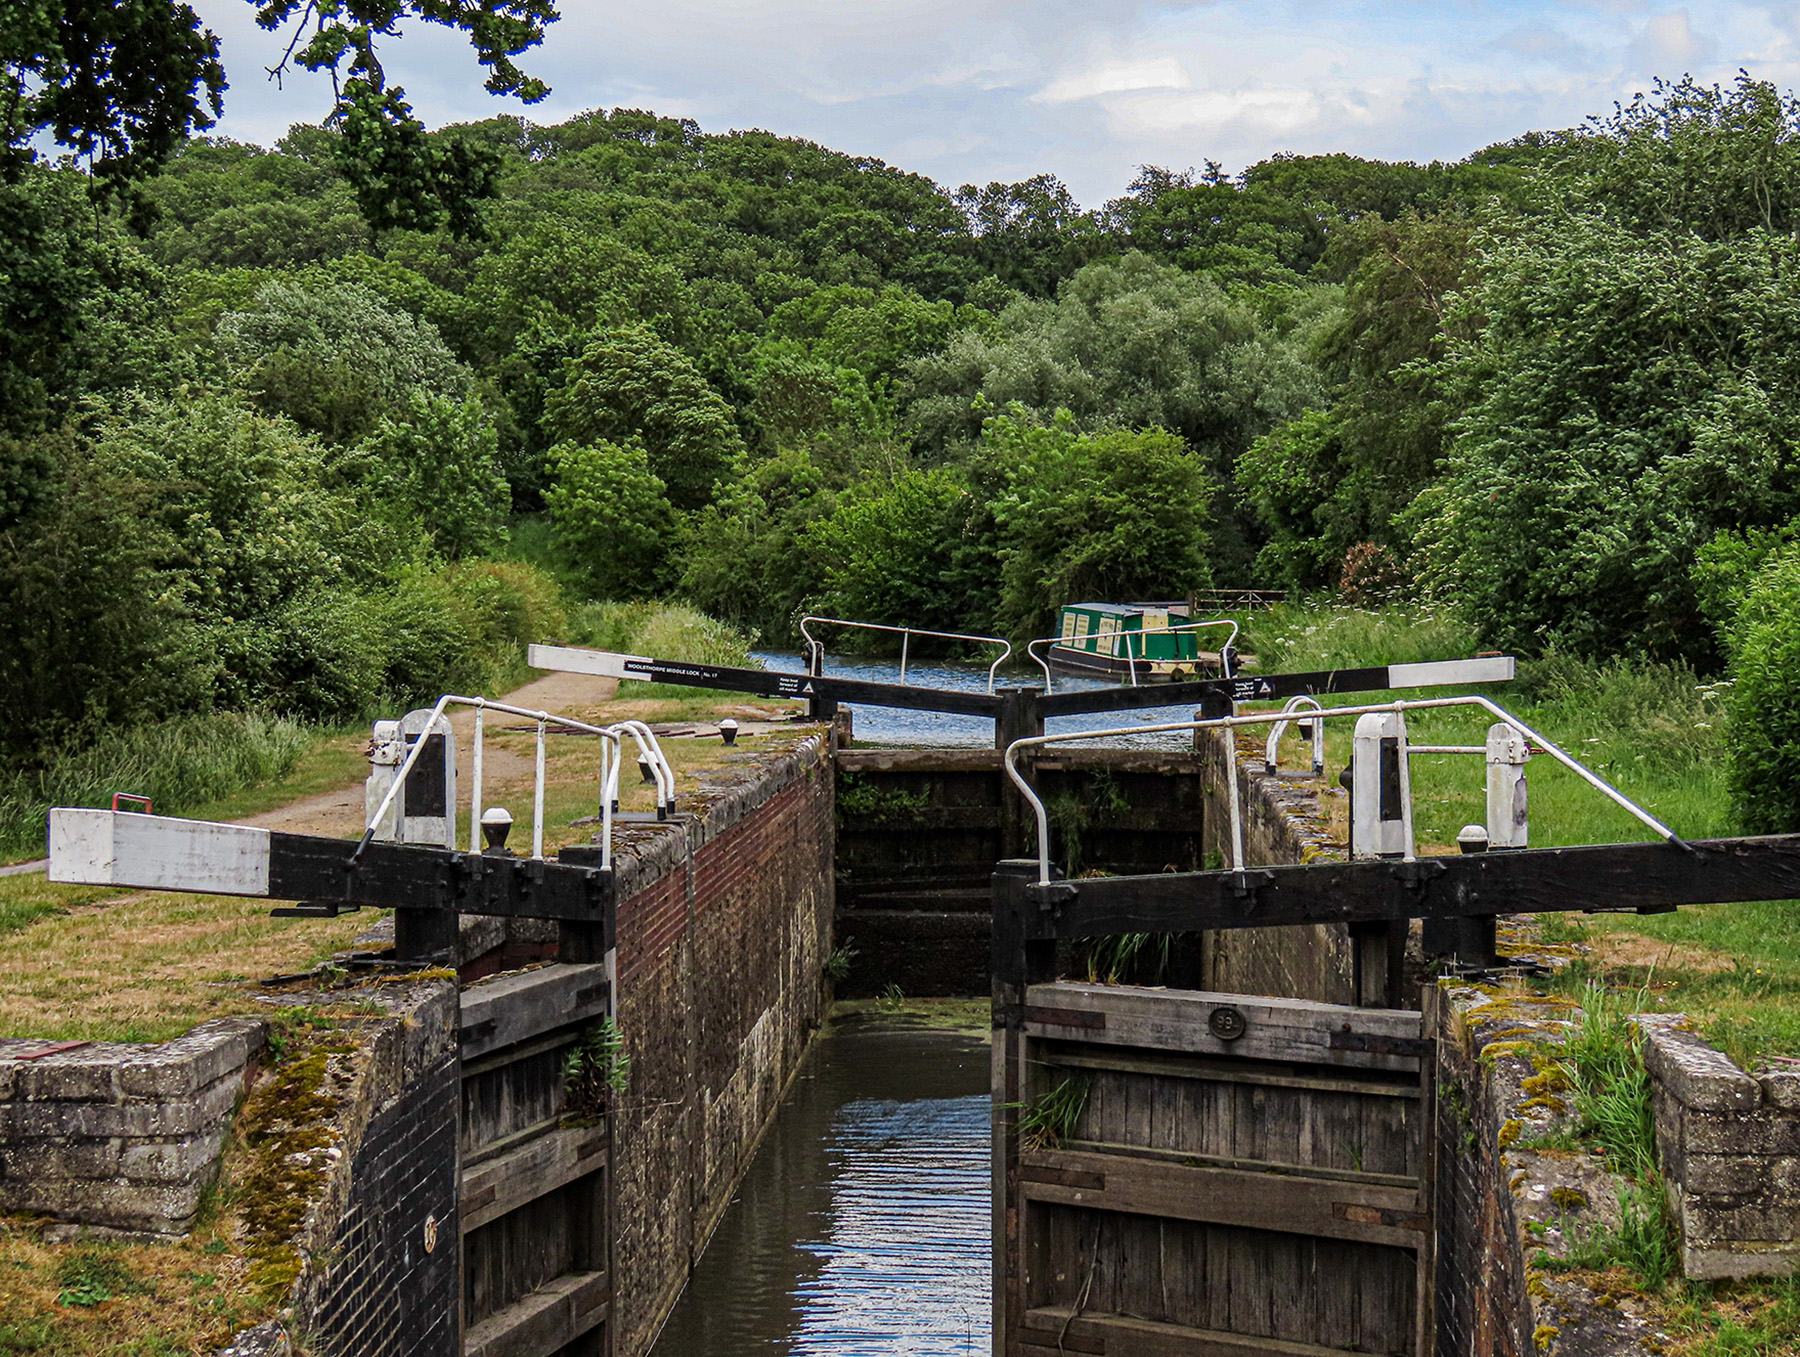 Grantham Canal - Woolsthorpe by Belvoir - Willis's Lock - Now